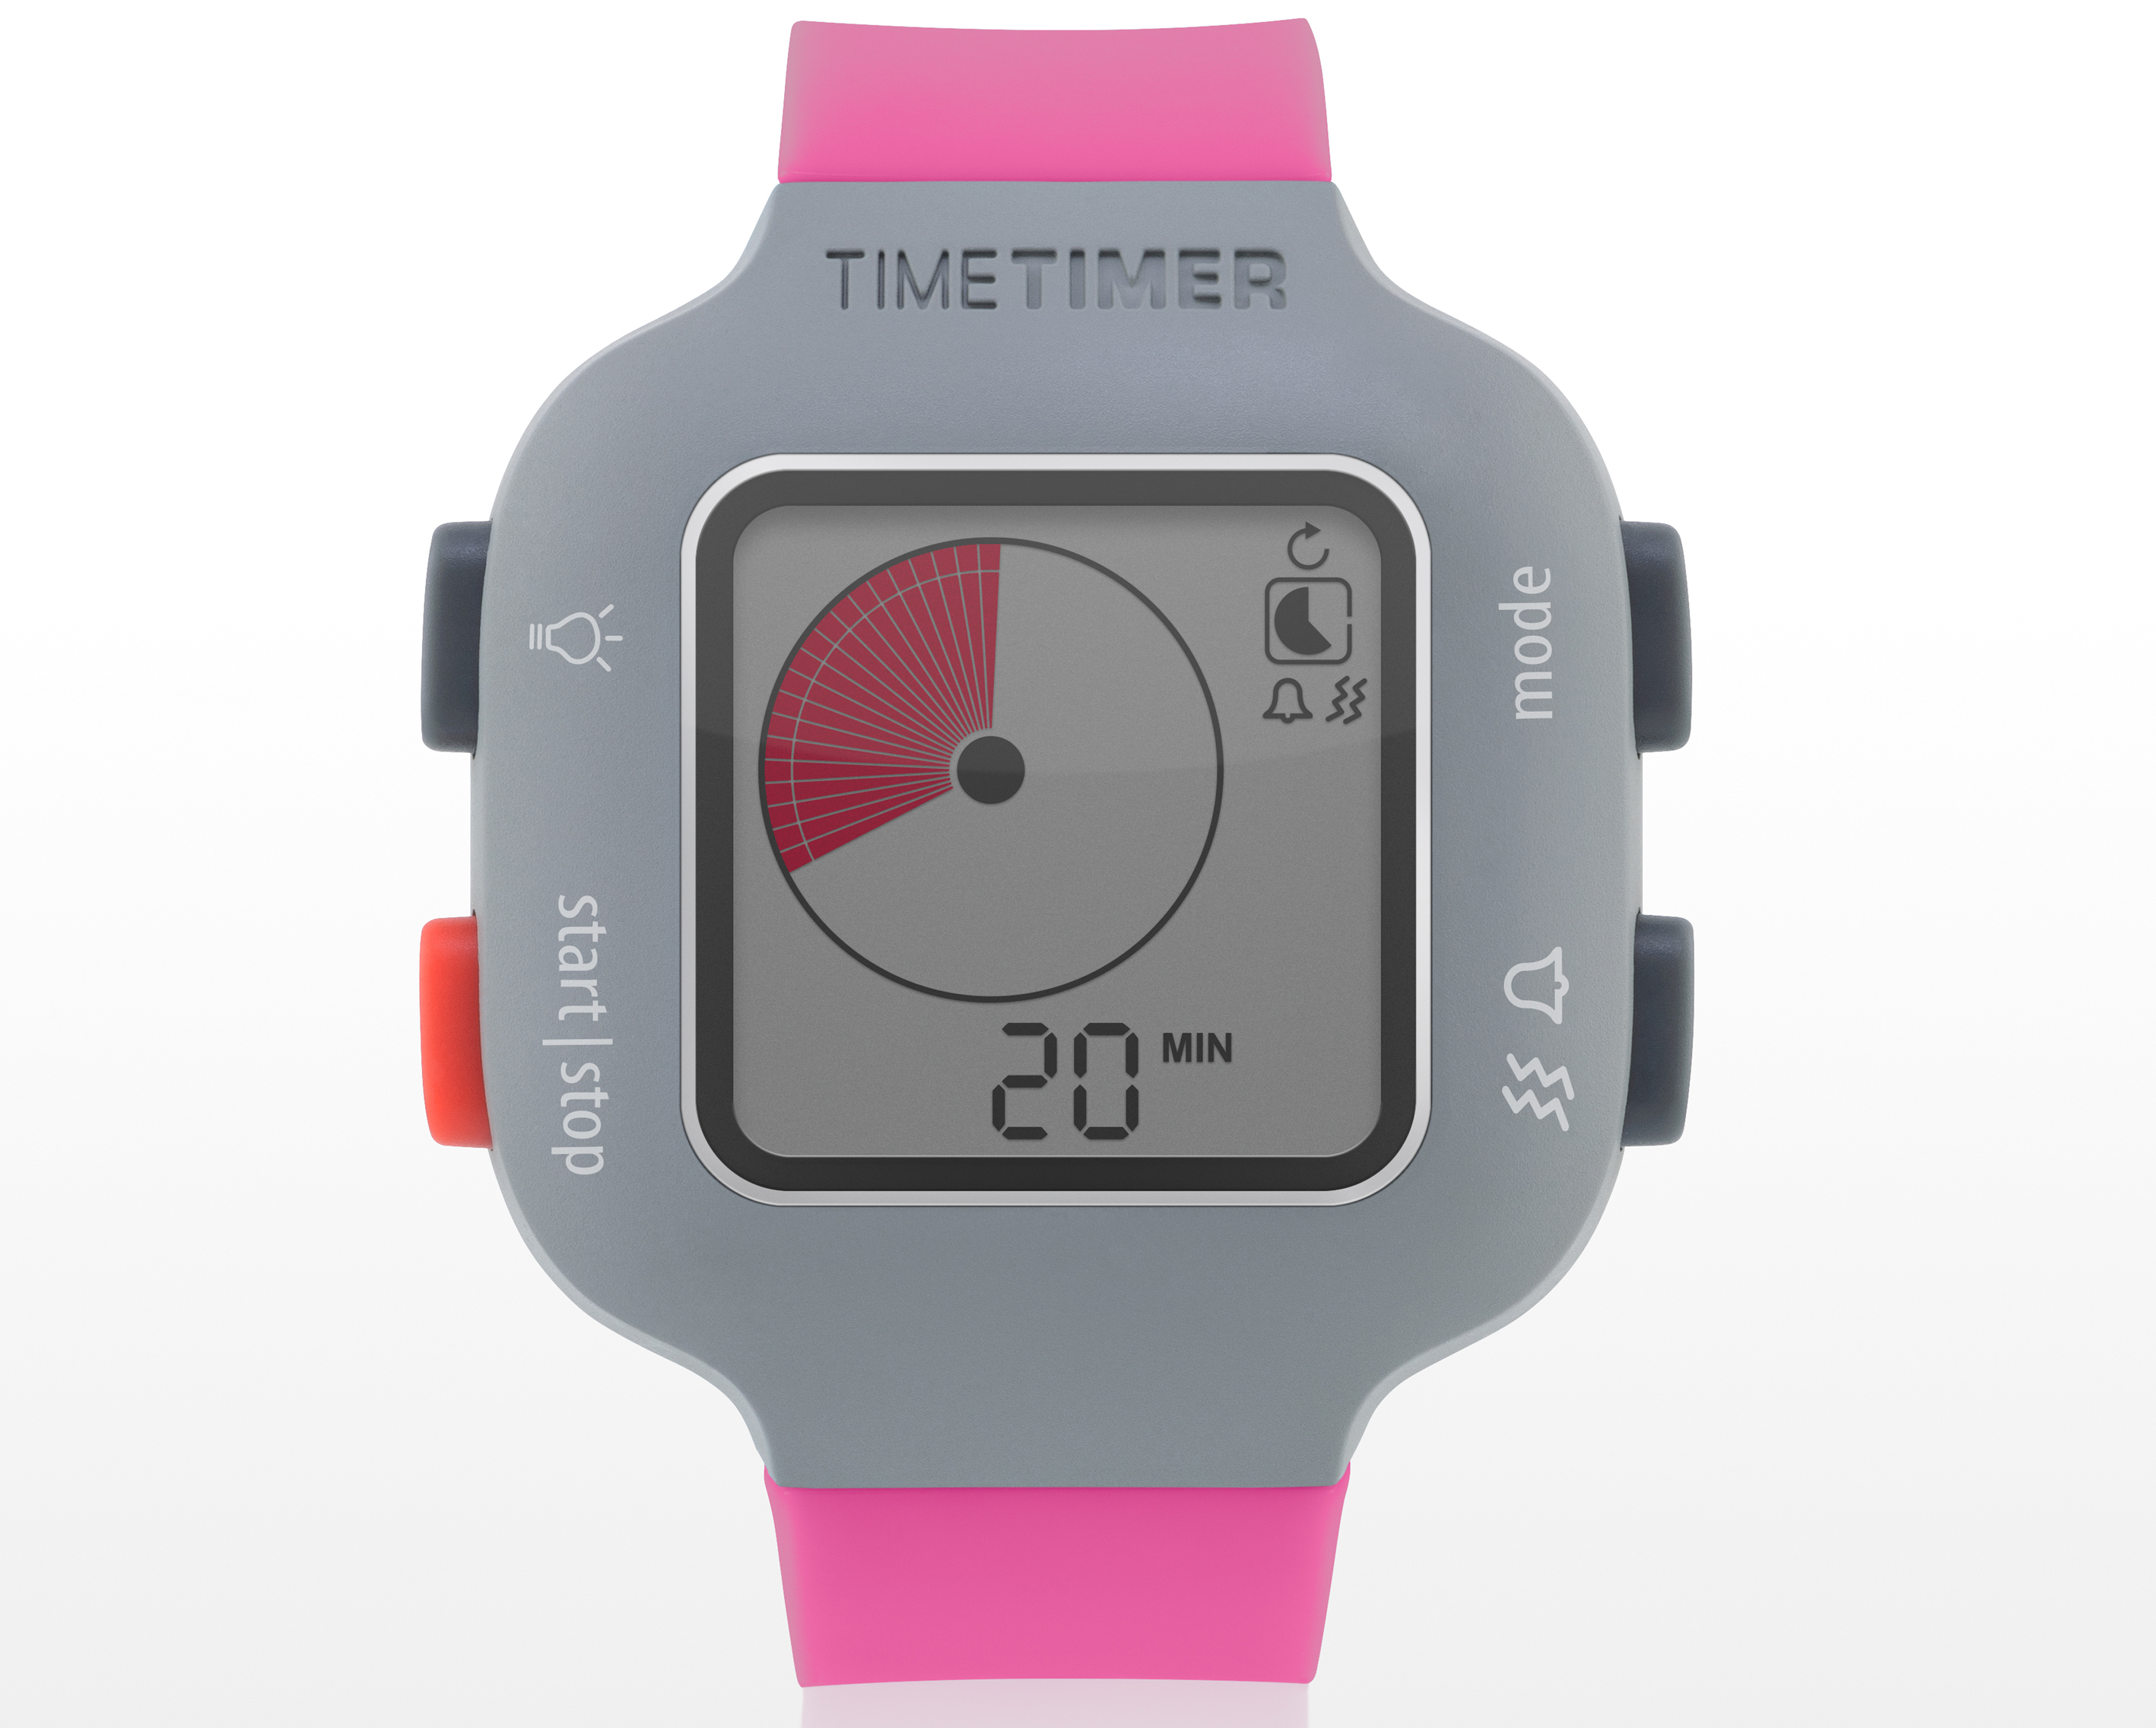 JAC5022BE - Time Timer watch Plus - youth - berry - Timer 20 min. (2)